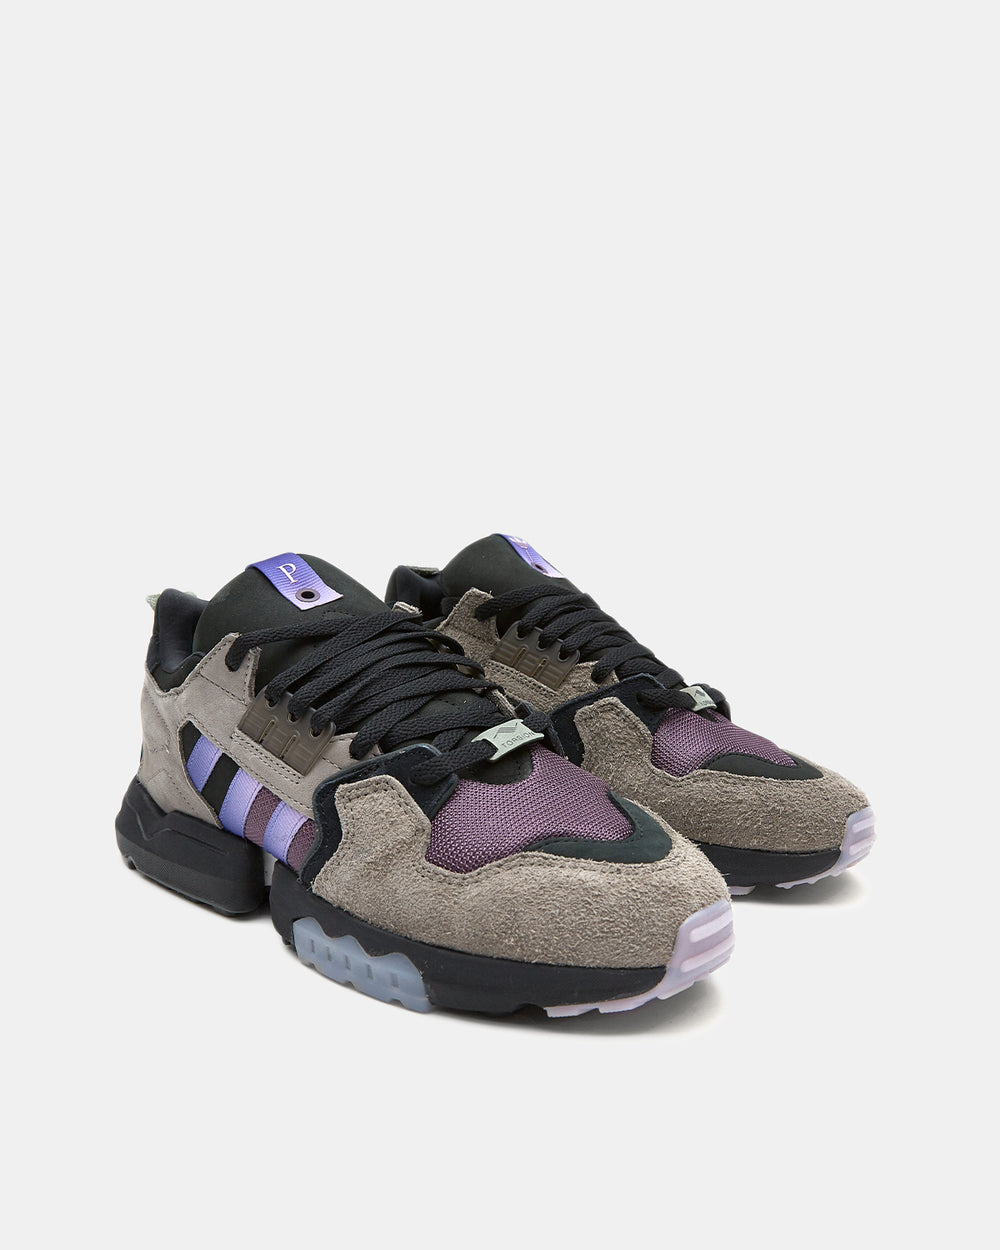 adidas Consortium - adidas Consortium x Packer ZX Torsion (Brown | Ink | Core Brown)